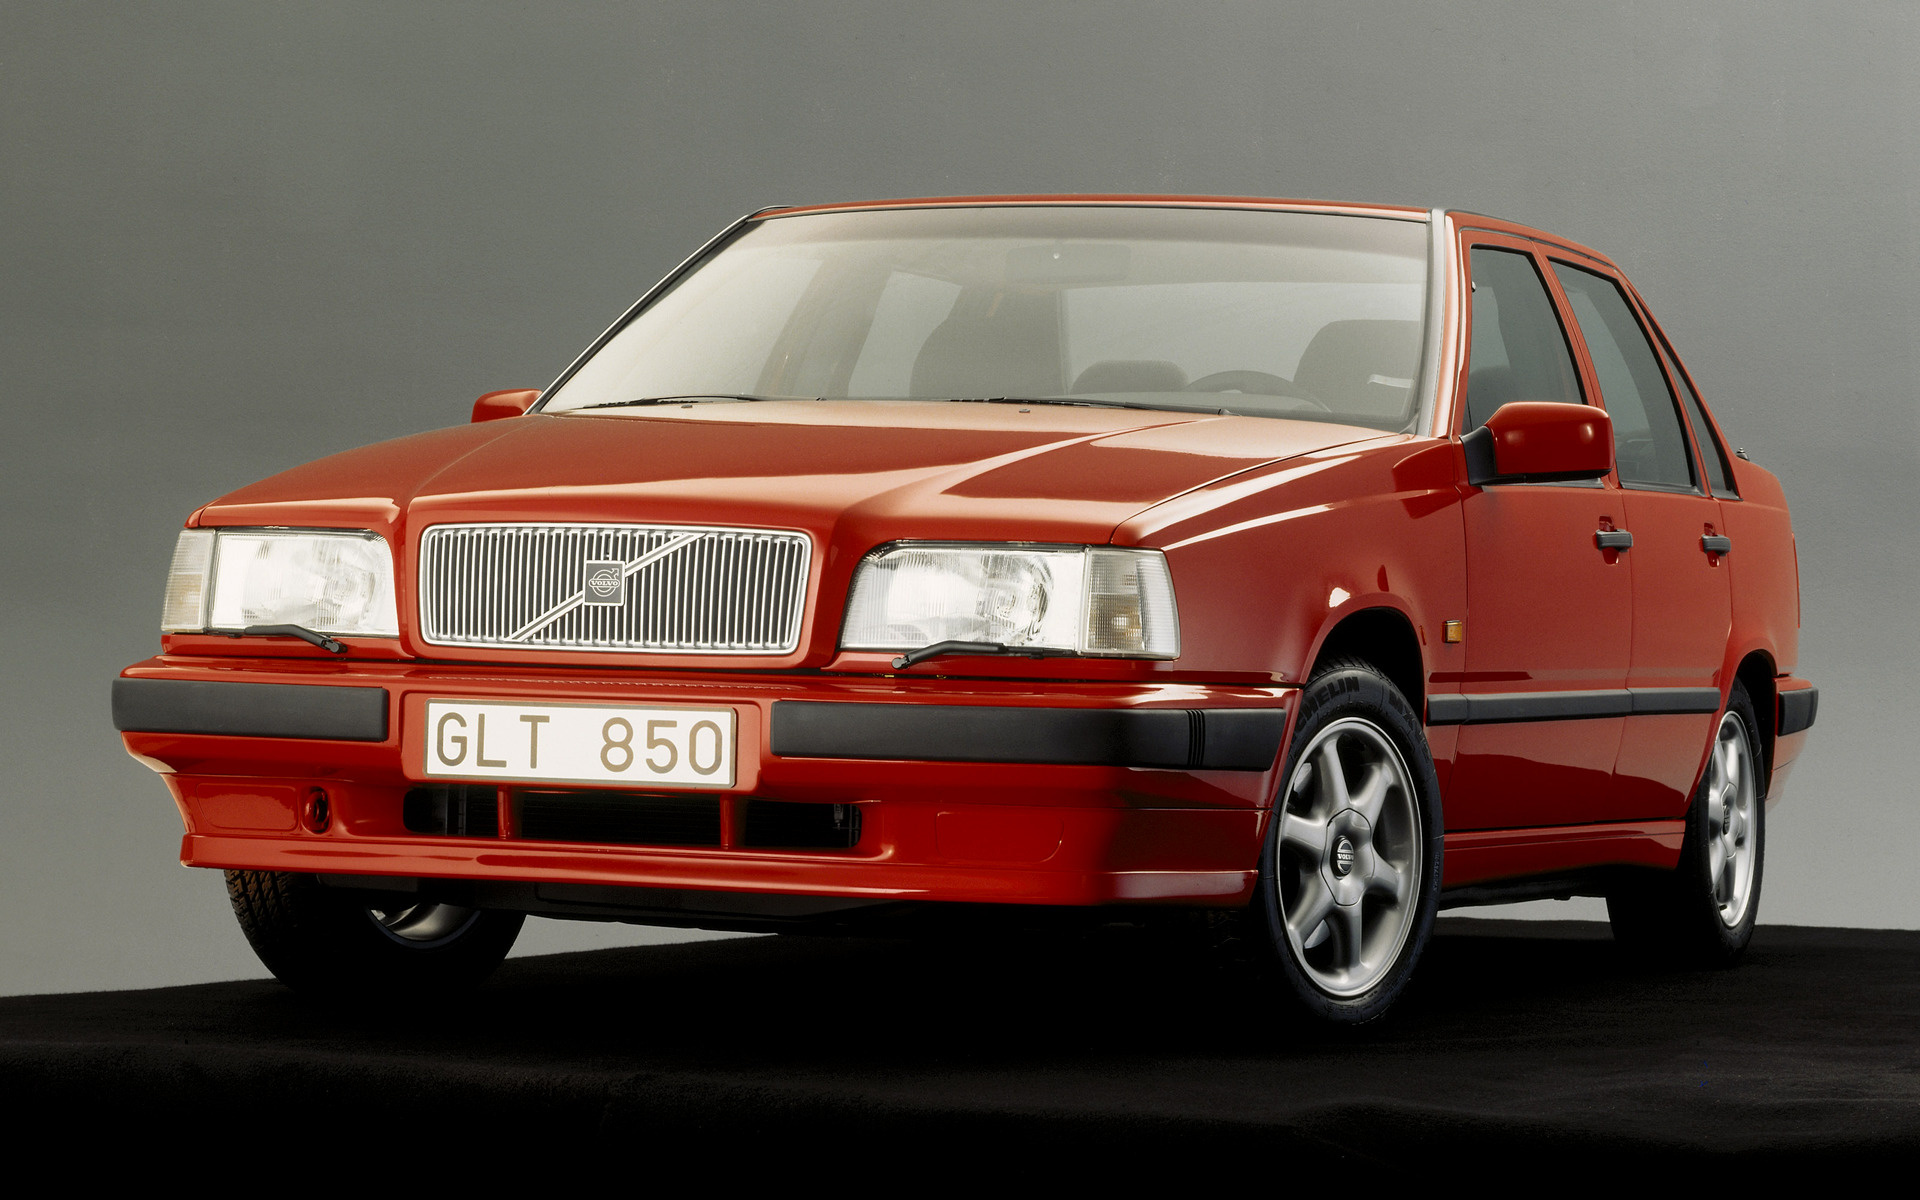 Volvo 850 GLT (1991) Wallpapers and HD Images - Car Pixel